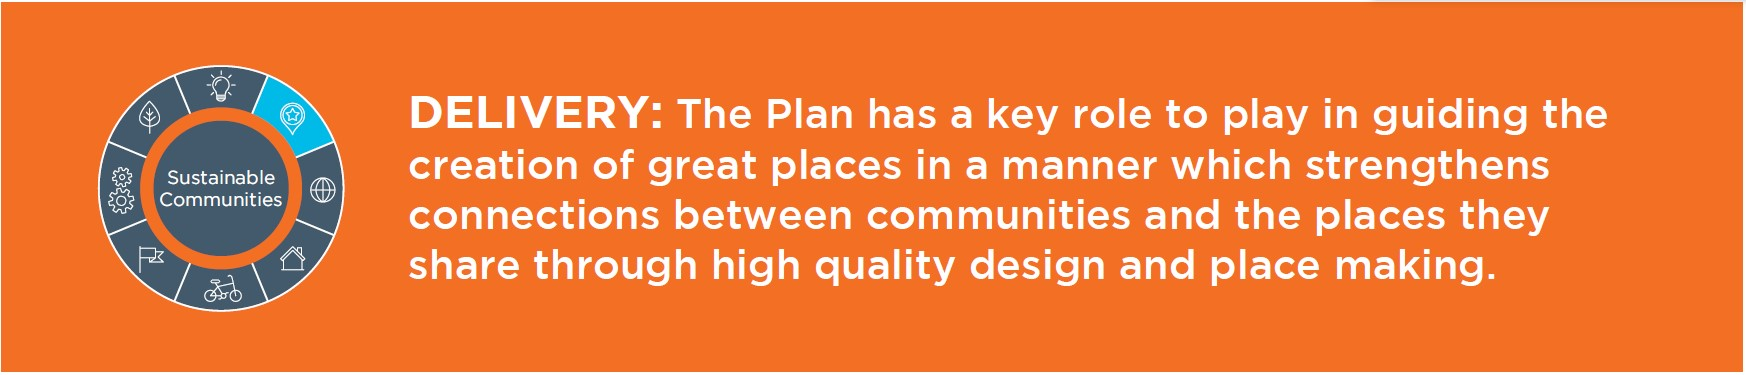 Delivery: The plan has a key role to play in guiding the creation of great places in a manner that strengthens  which strengthens connections between communities and the places they share through high quality design and place-making.